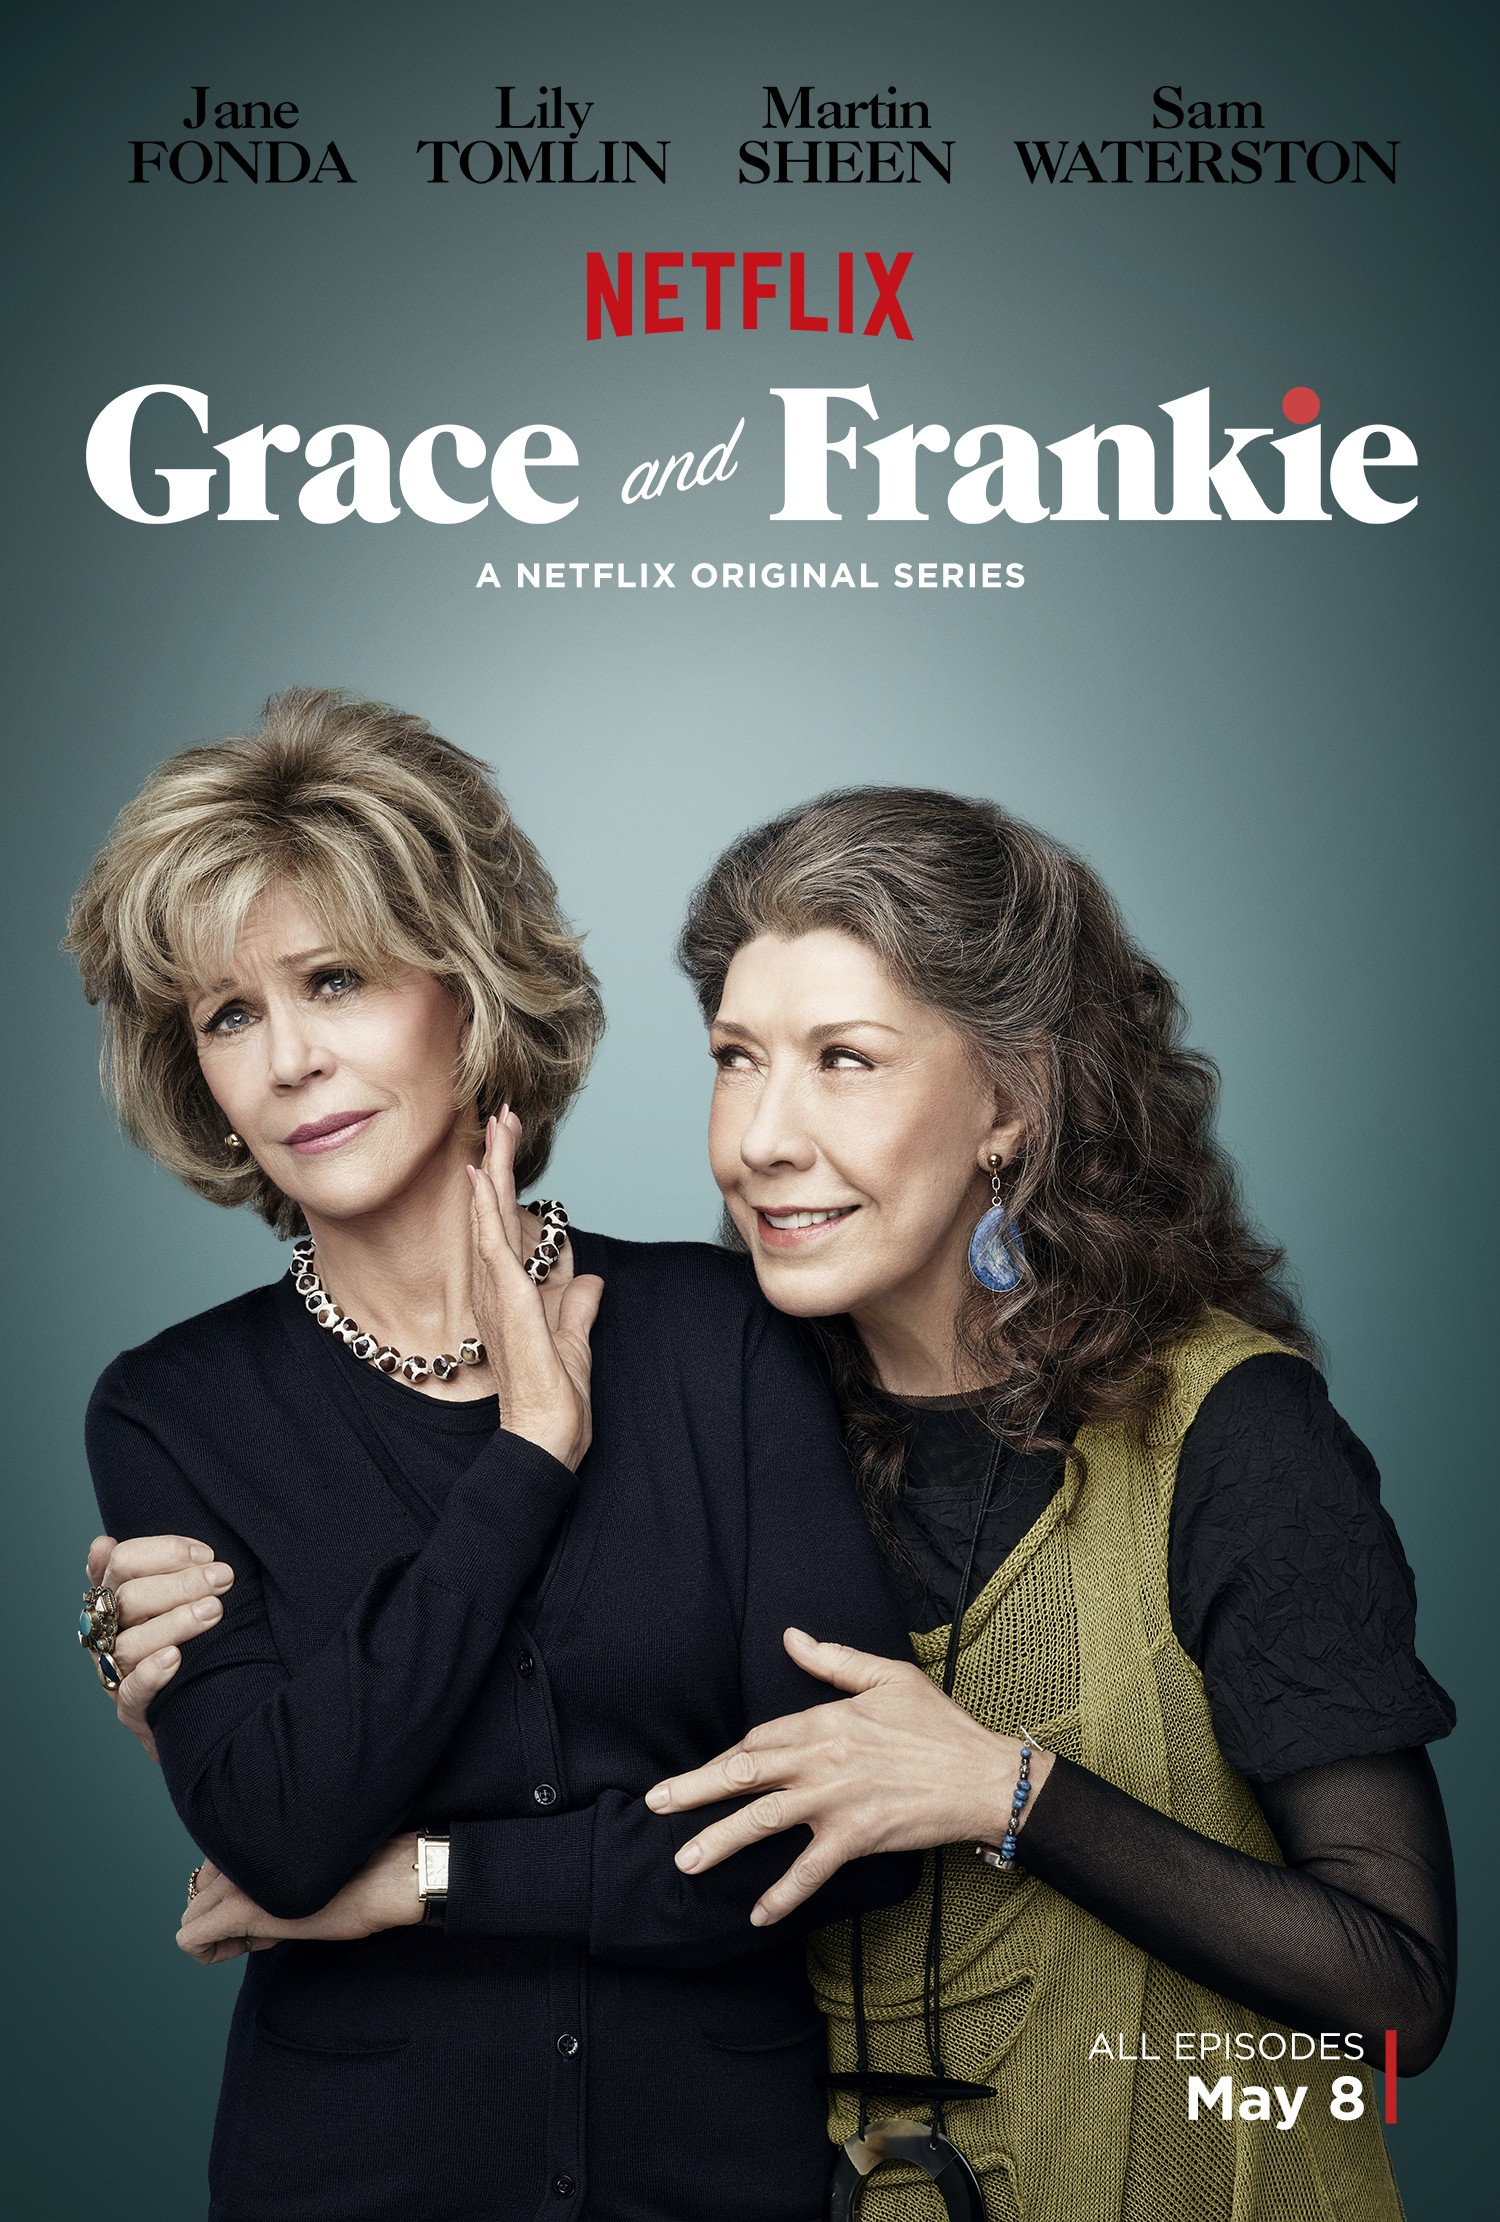 #FCZBSommertipps: Grace and Frankie (Serie)